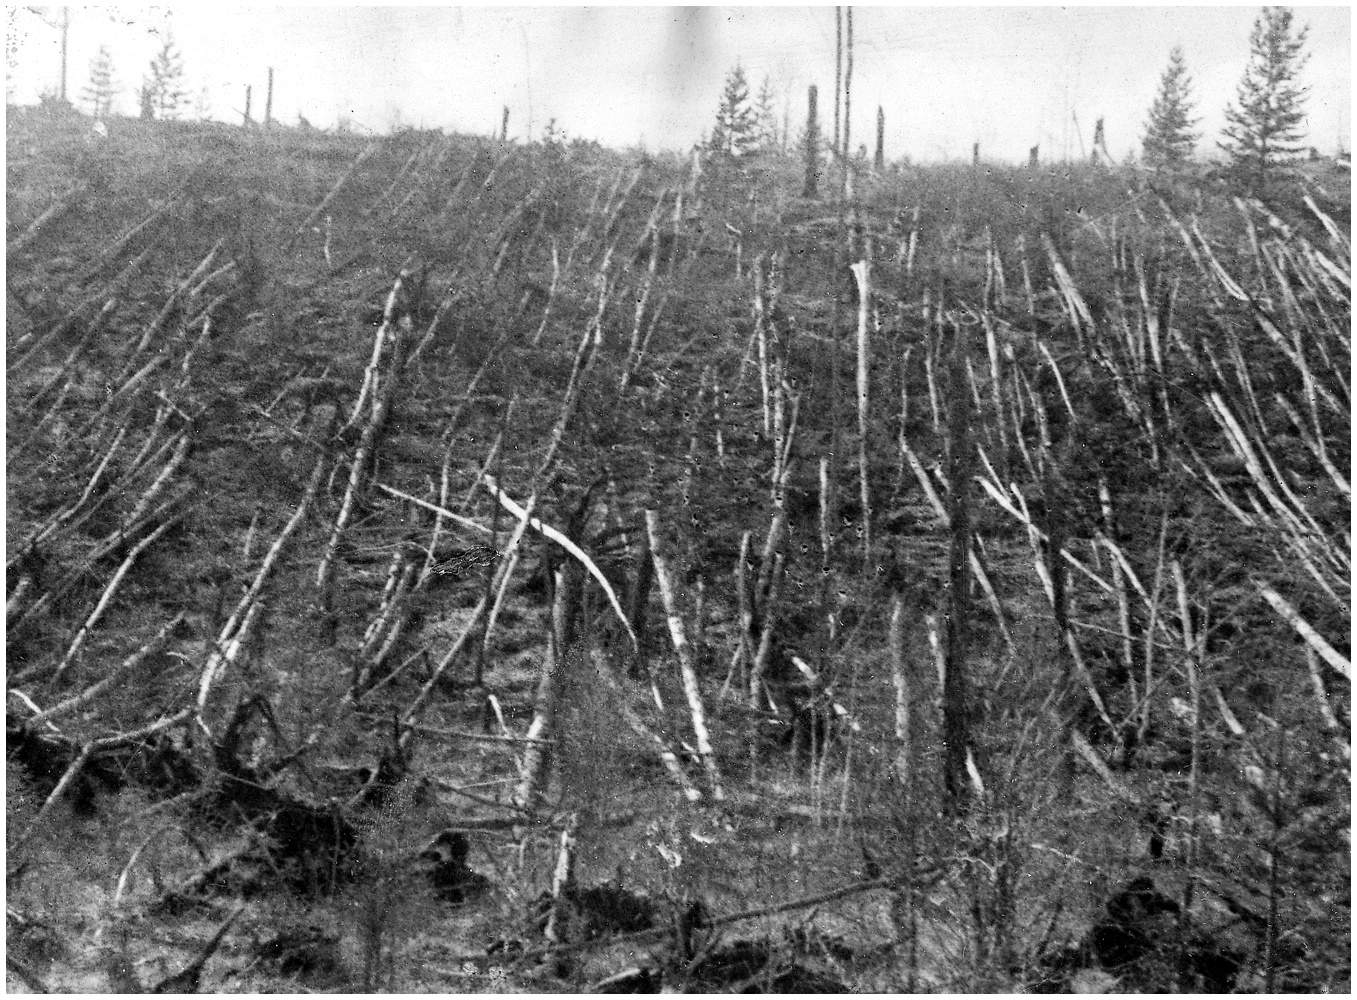 Uprooted trees at Tunguska - Logical Mystery